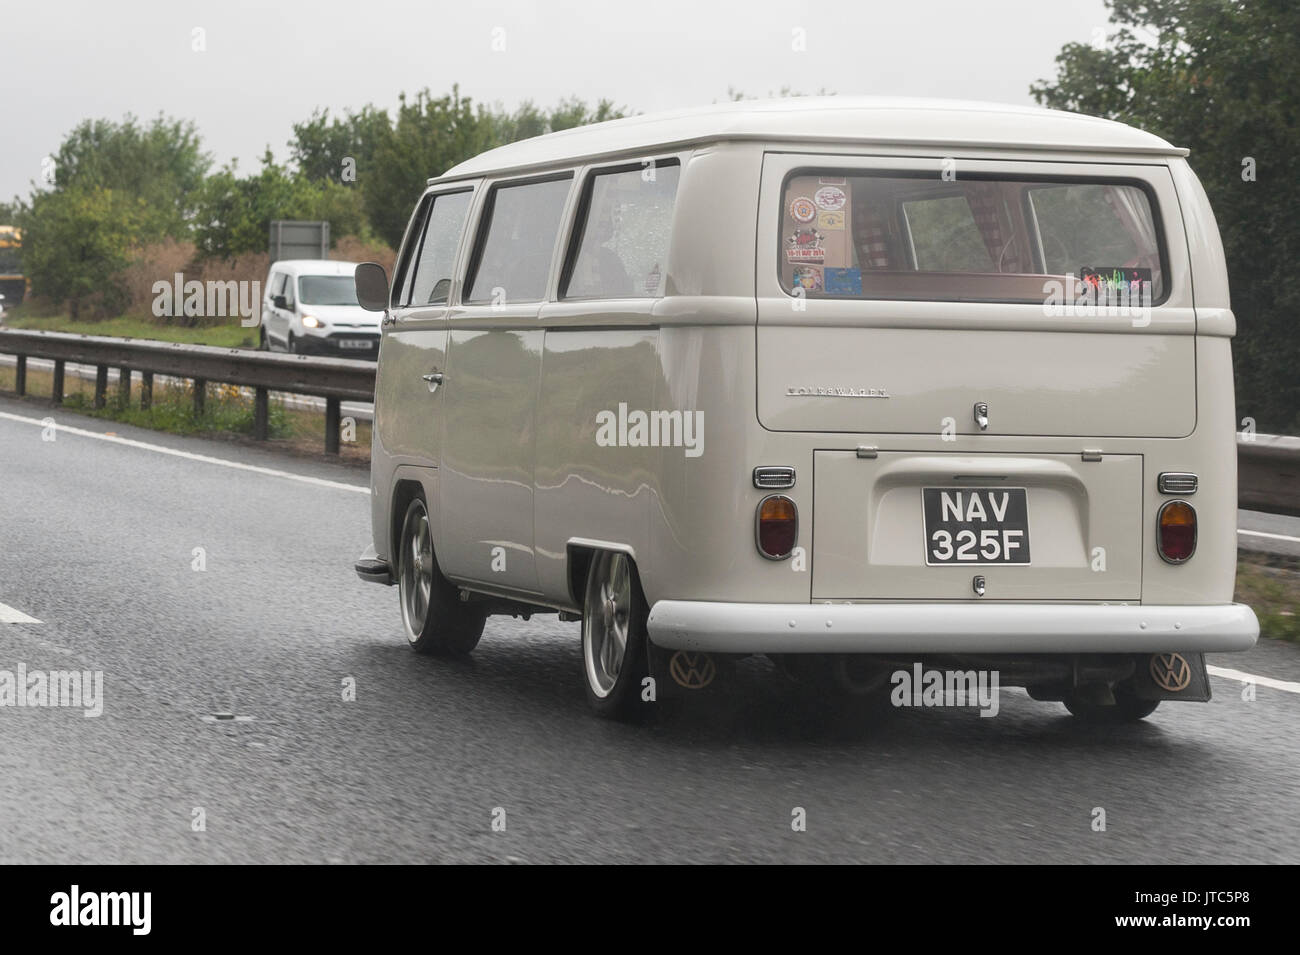 A classic VW campervan driving on a main road in the Uk - Stock Image